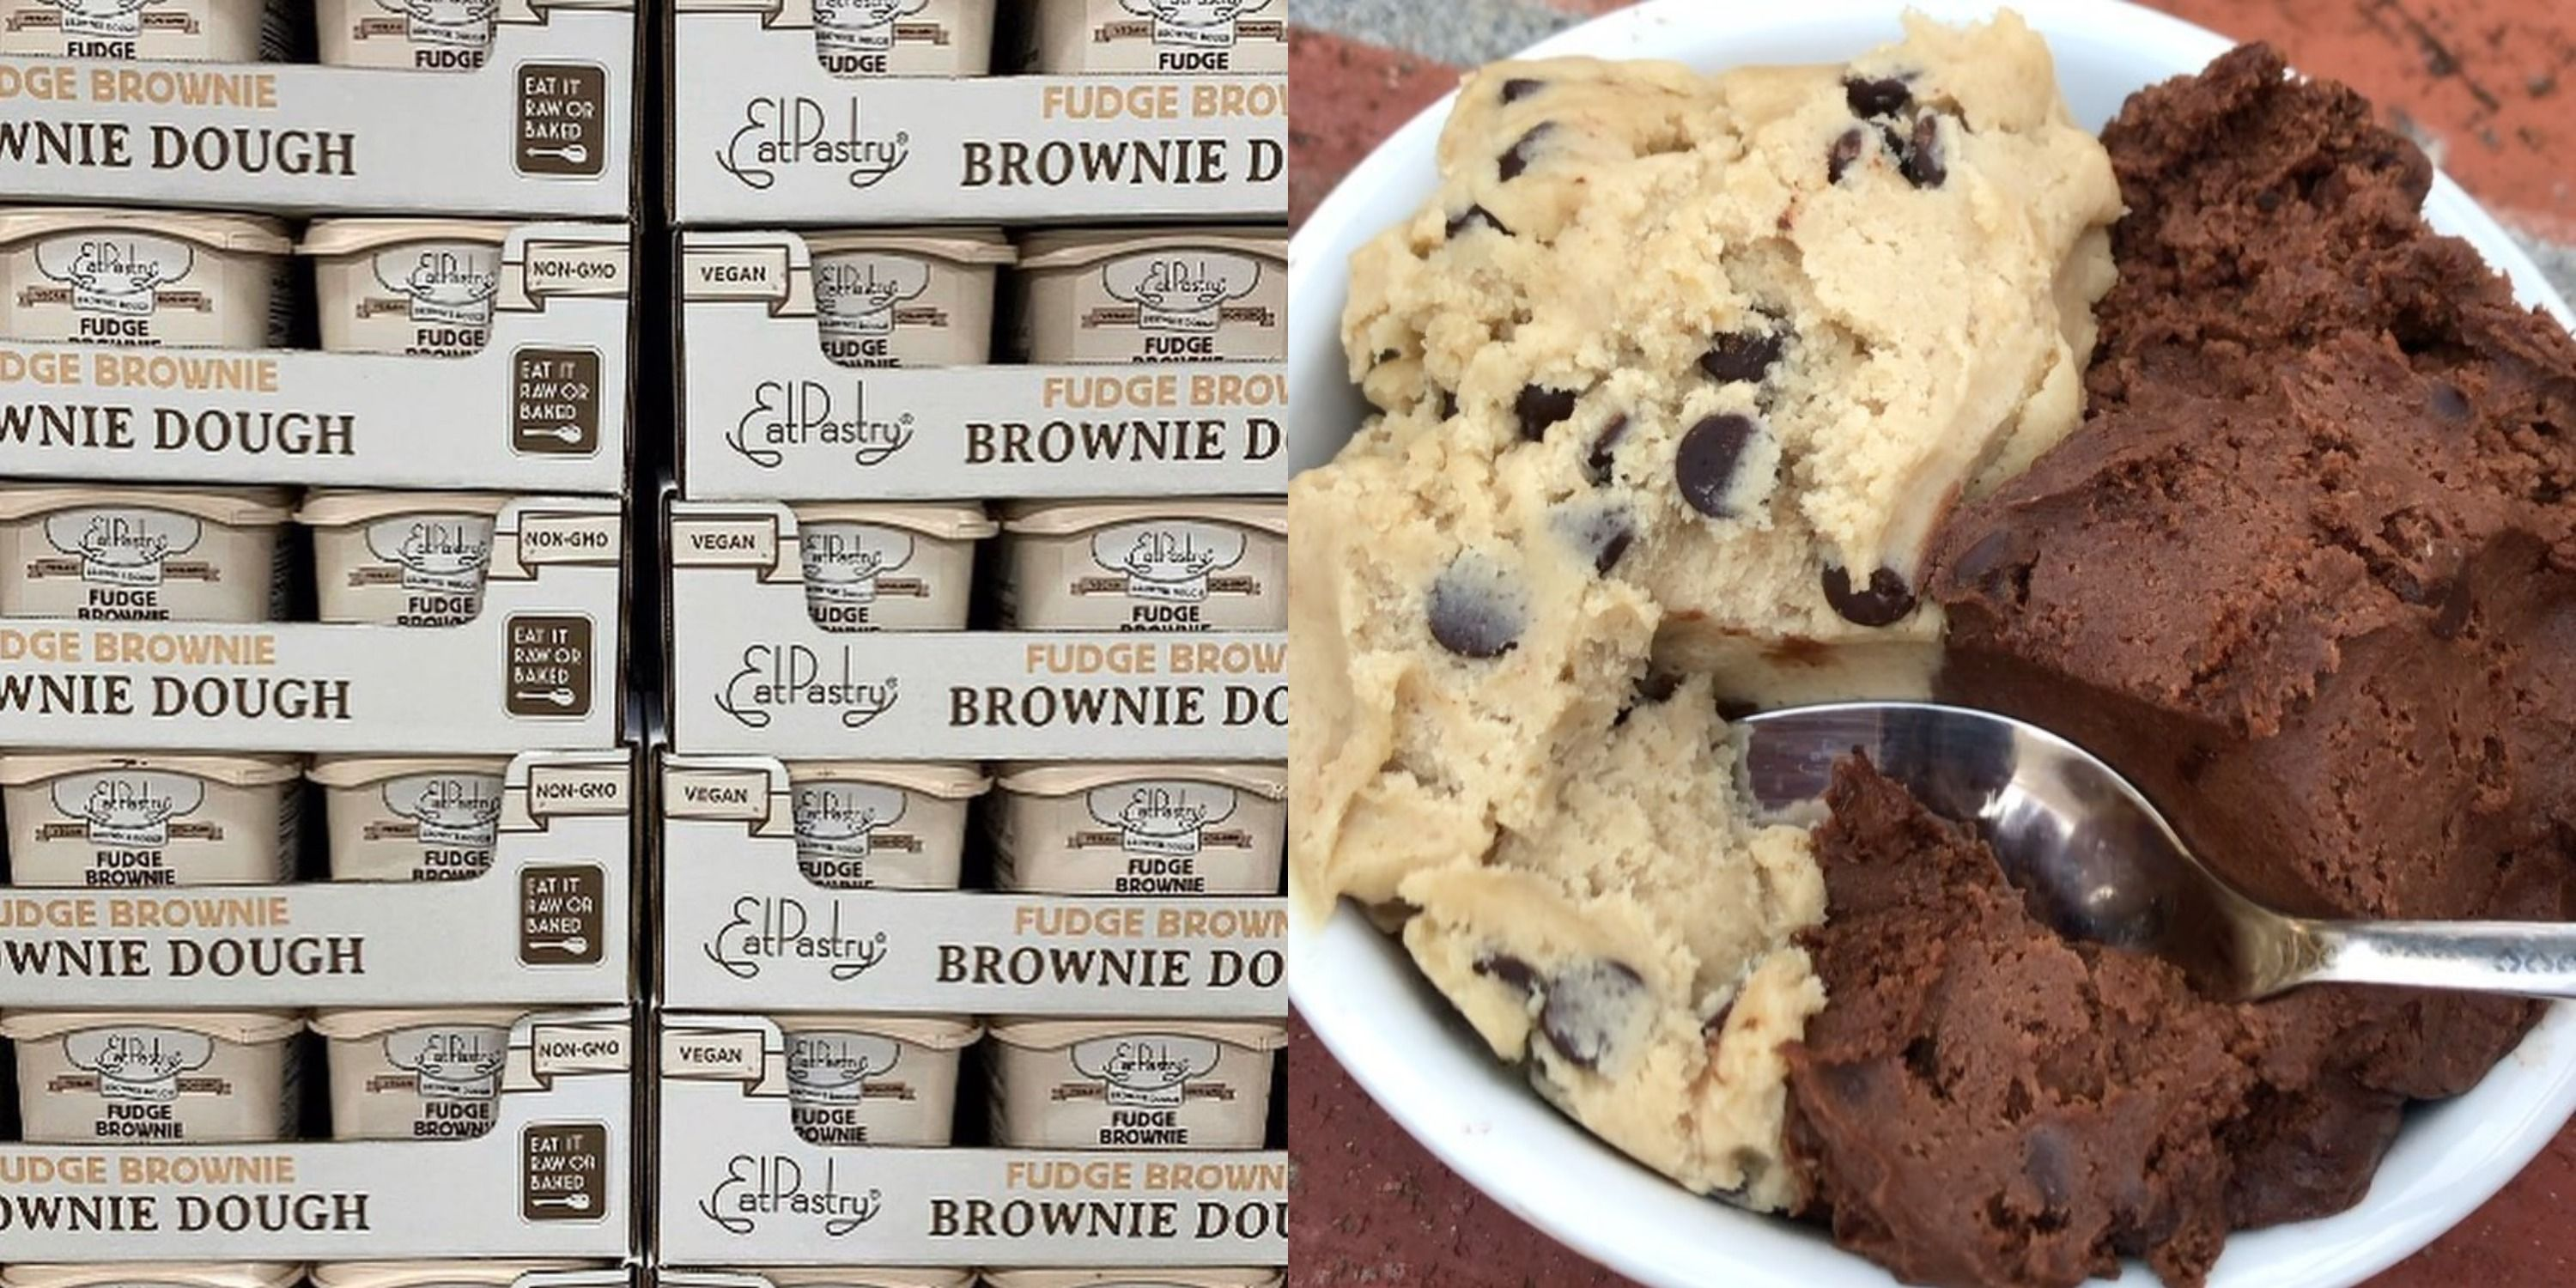 Costco Is Selling Giant Tubs Of Brownie Dough You Can Eat Raw